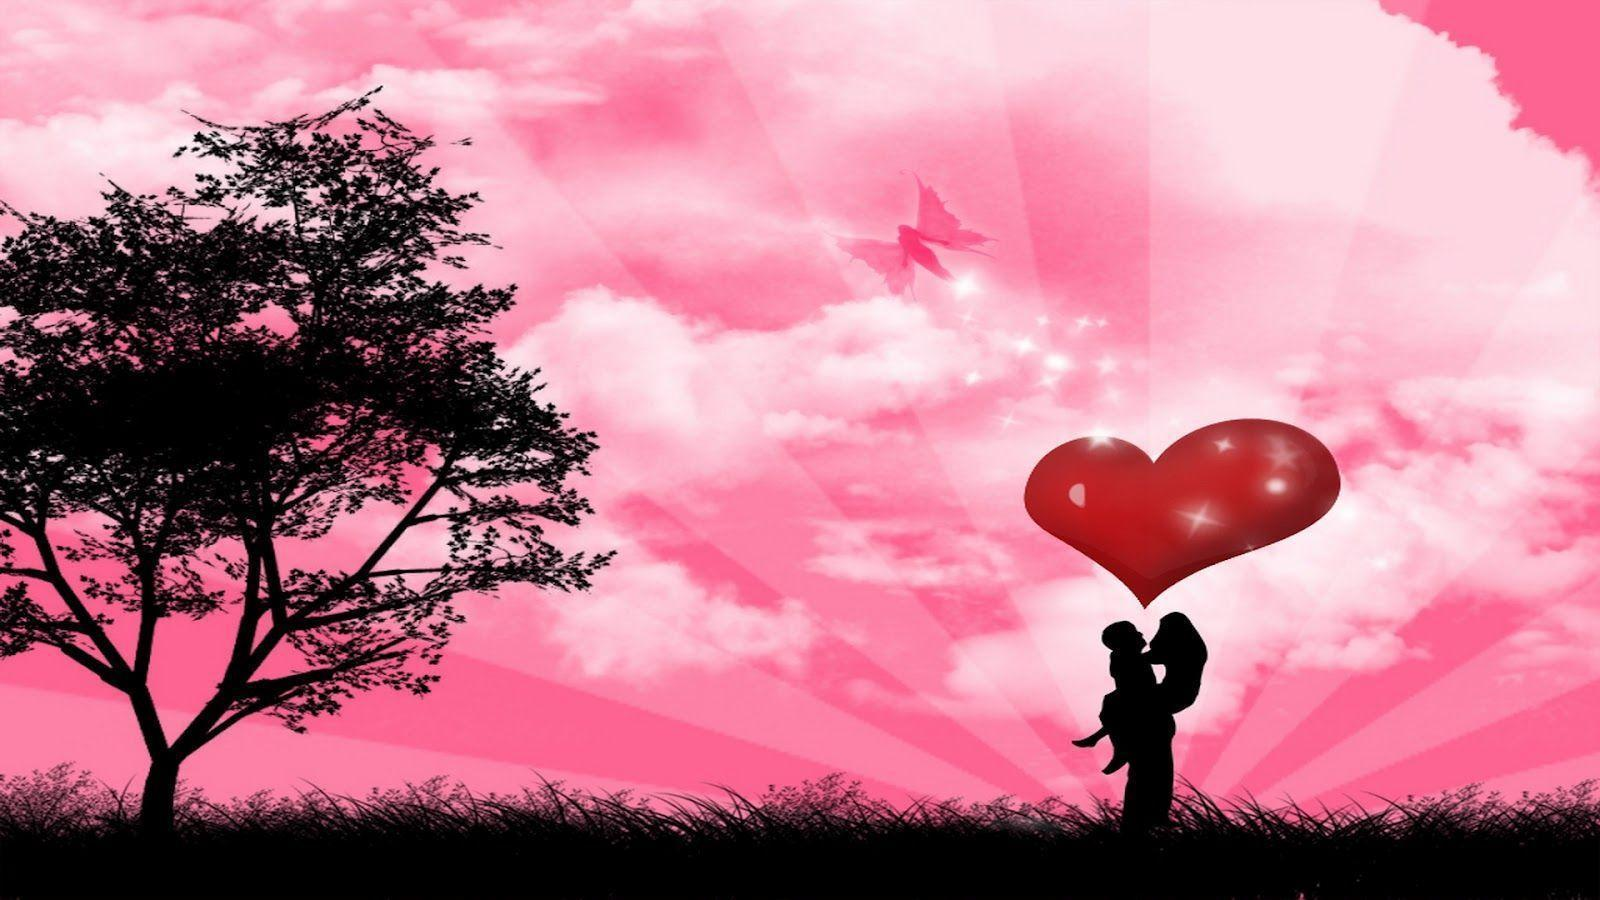 Love Birthday Wallpapers Backgrounds : Love Romantic Wallpapers - Wallpaper cave